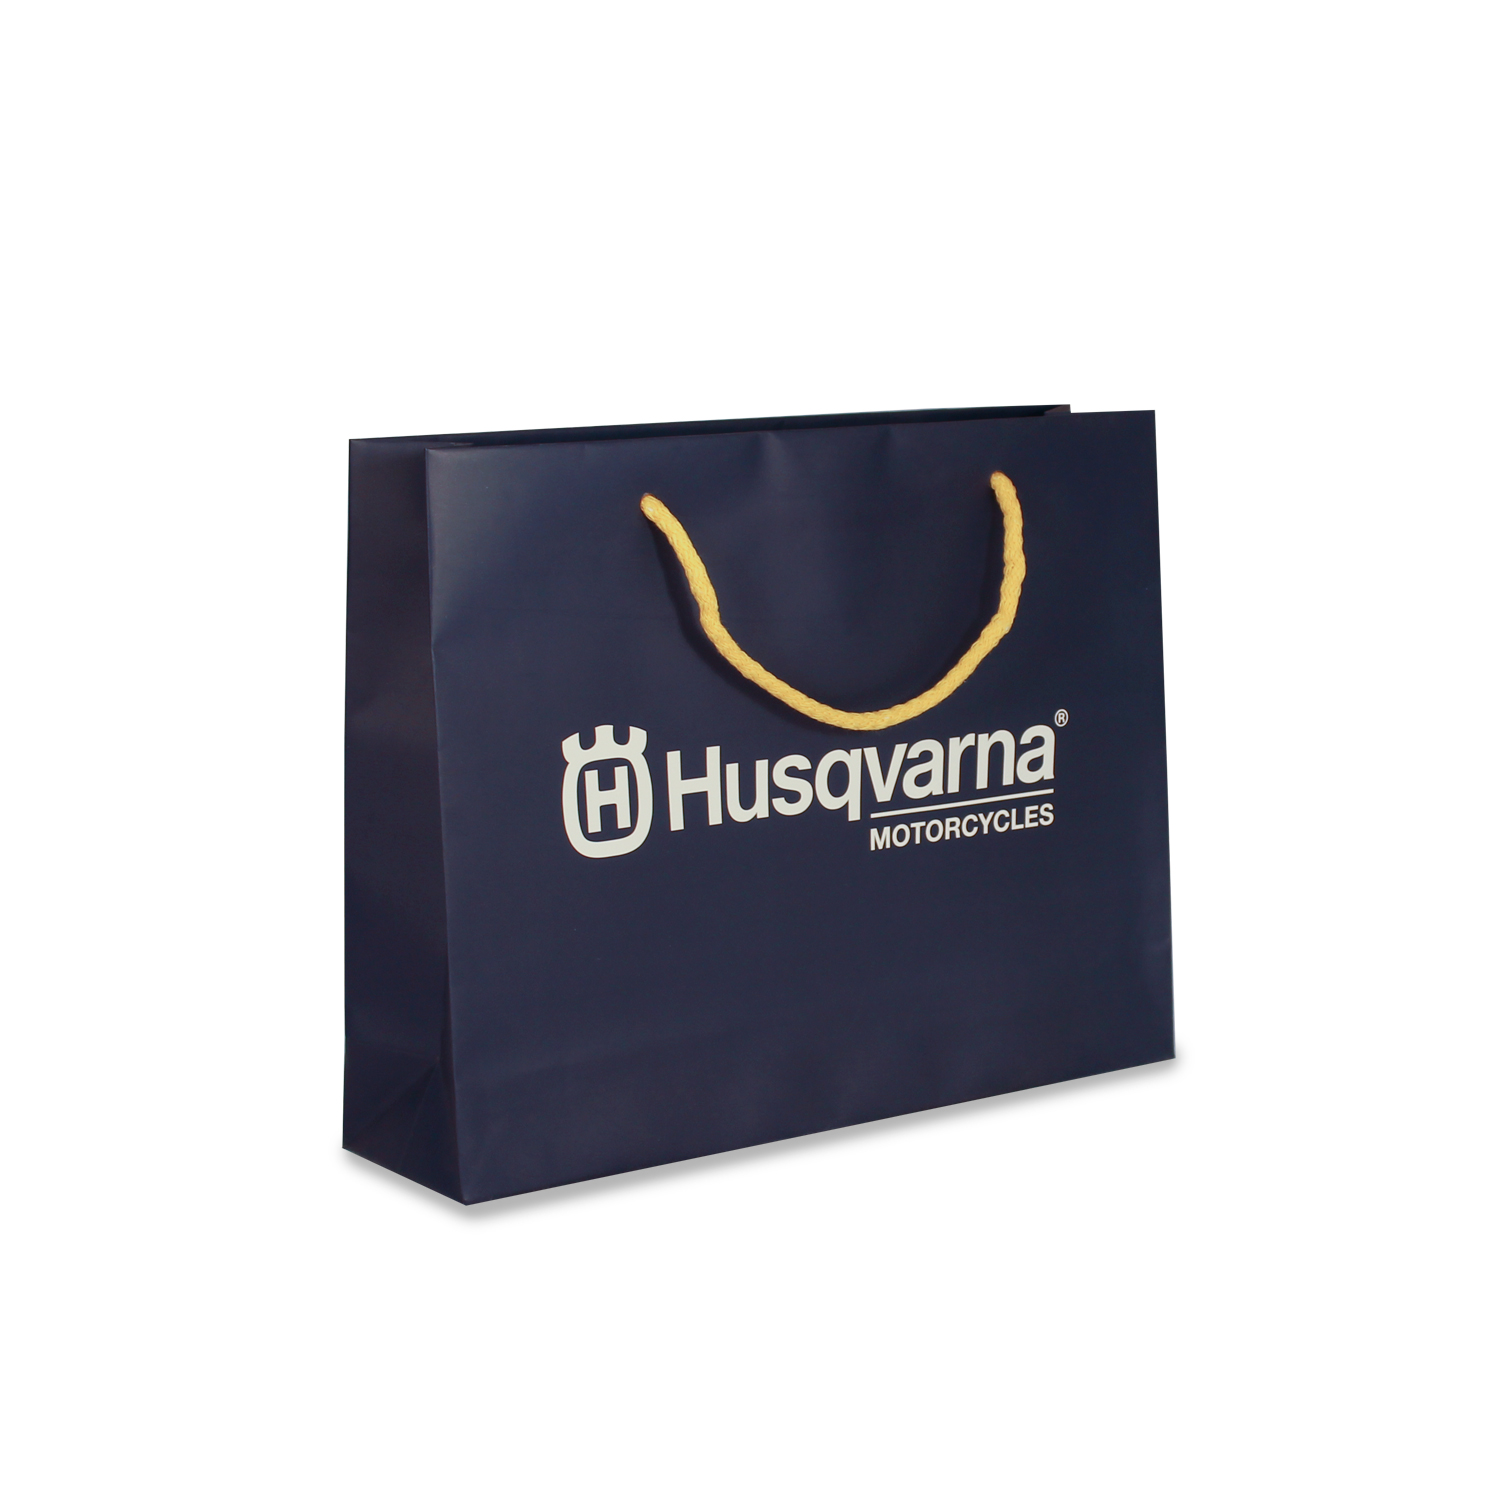 2 | Husqvarna Motocycles | Shopping bag